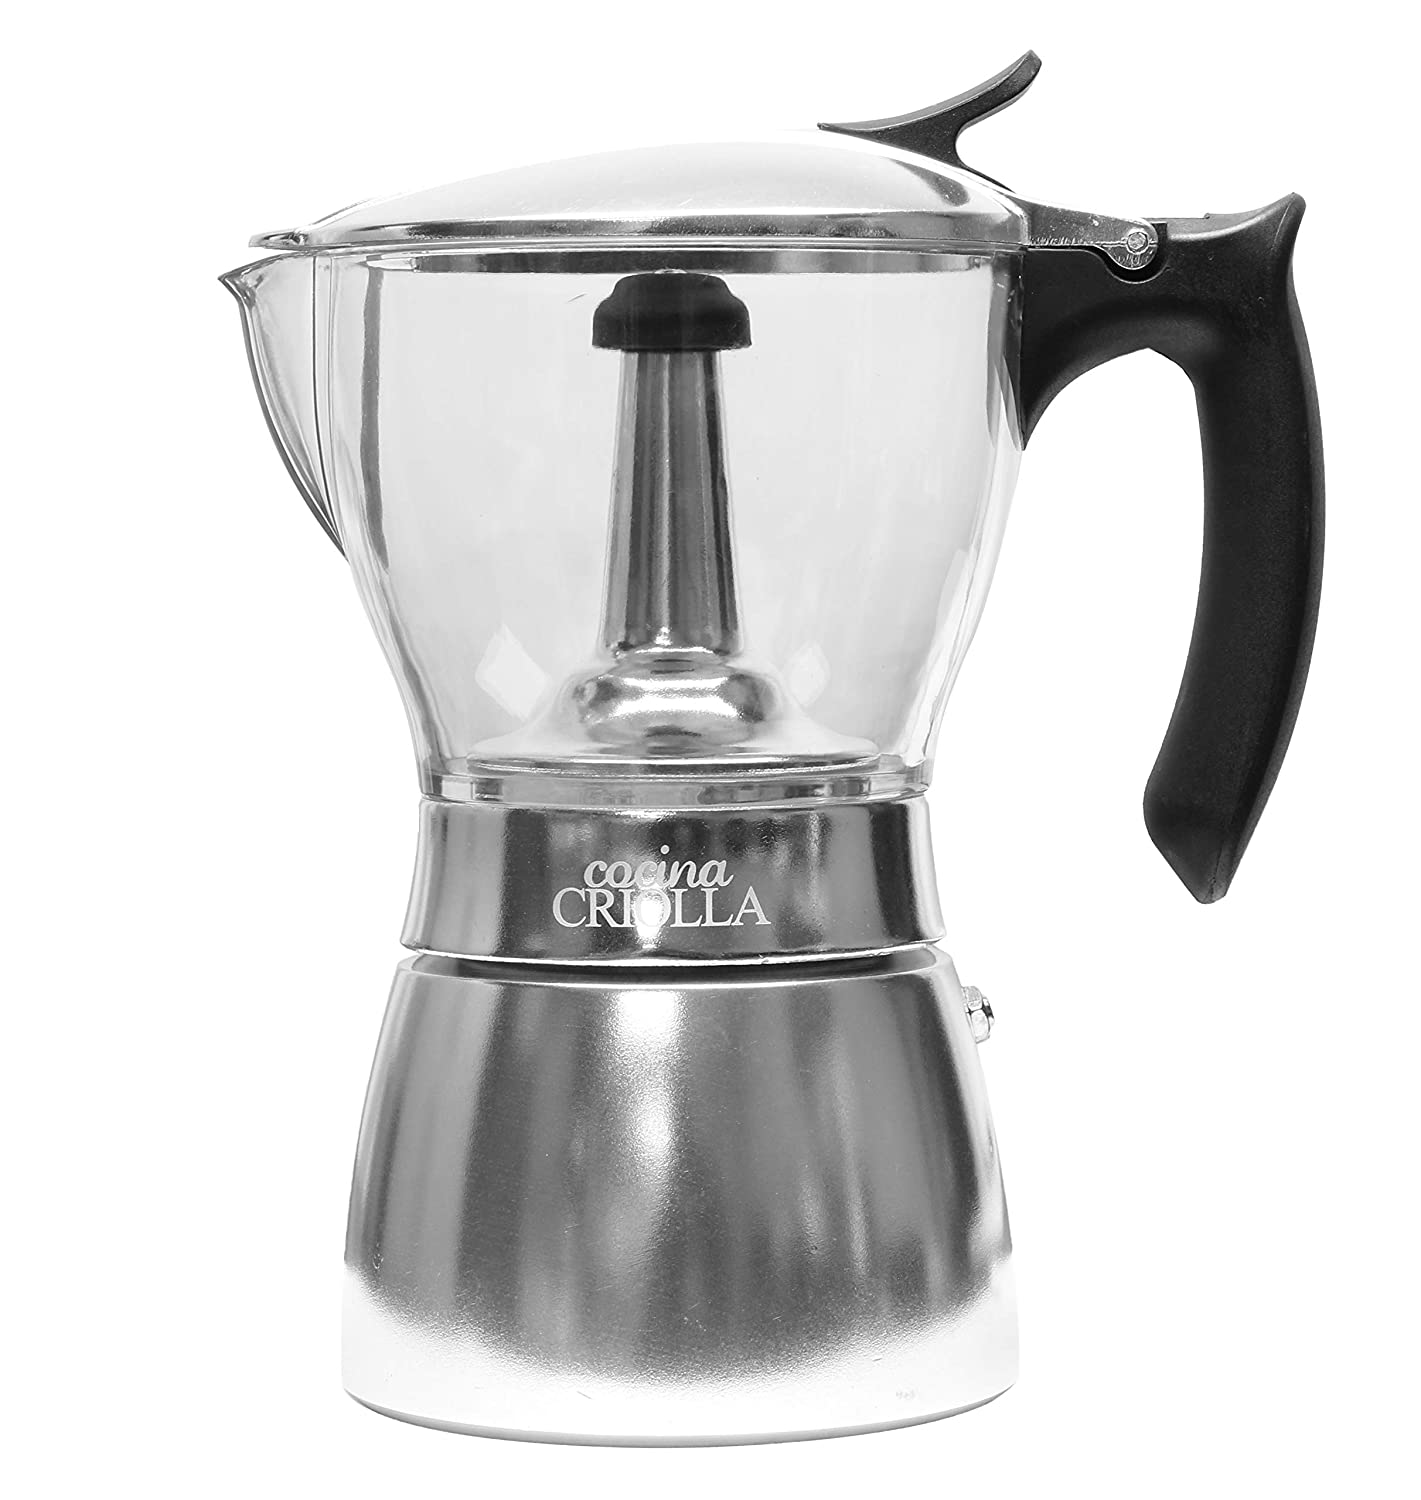 Clear-Top Stovetop Espresso Maker Pot | 6 cup | Coffee Maker with Durable Food-Grade Aluminum Bottom | Greca | Cafetera Transparente.